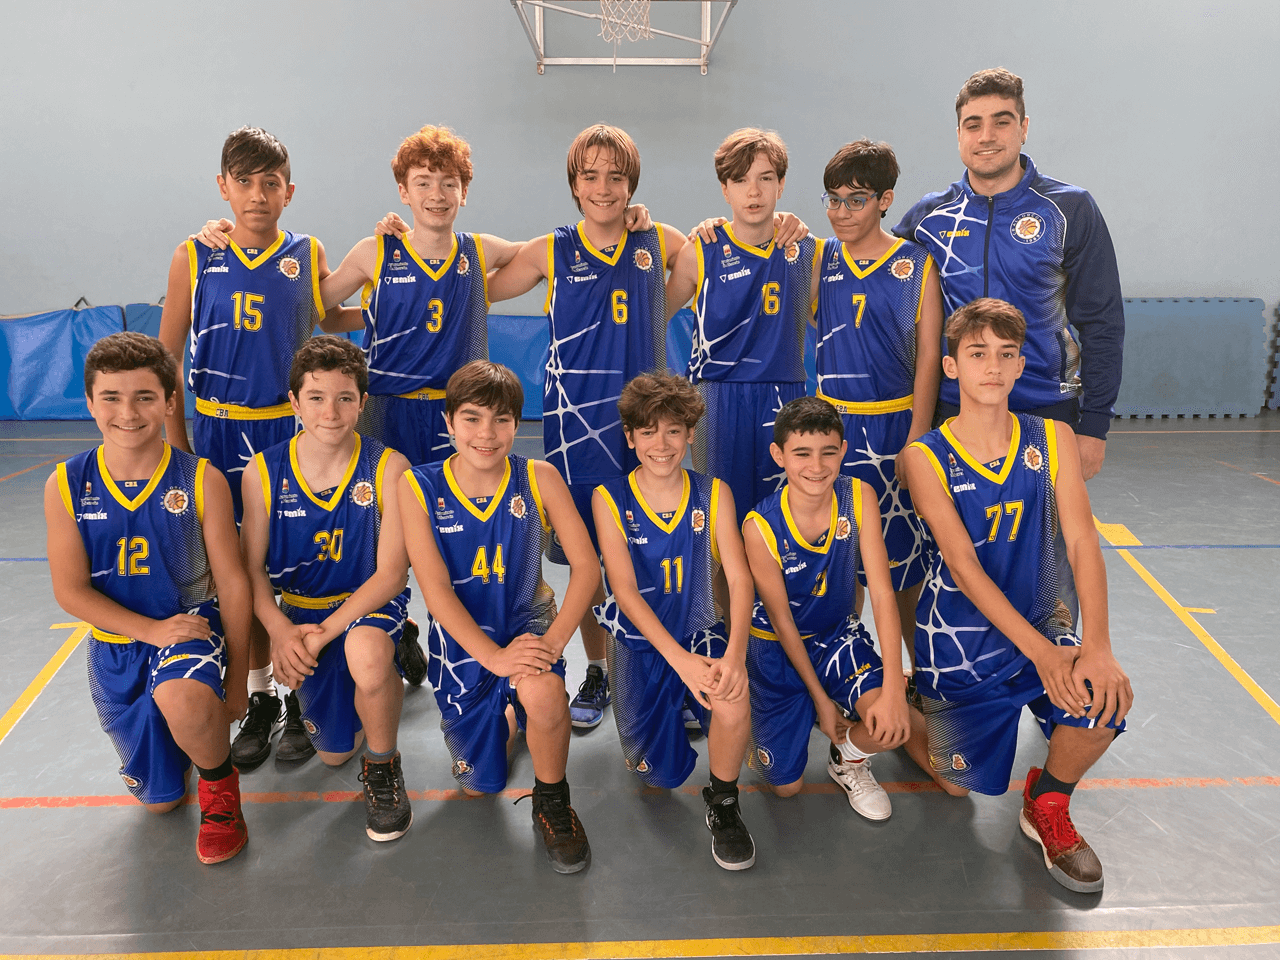 https://clubbaloncestoalcorcon.com/wp-content/uploads/2019/12/equipo-1280.png